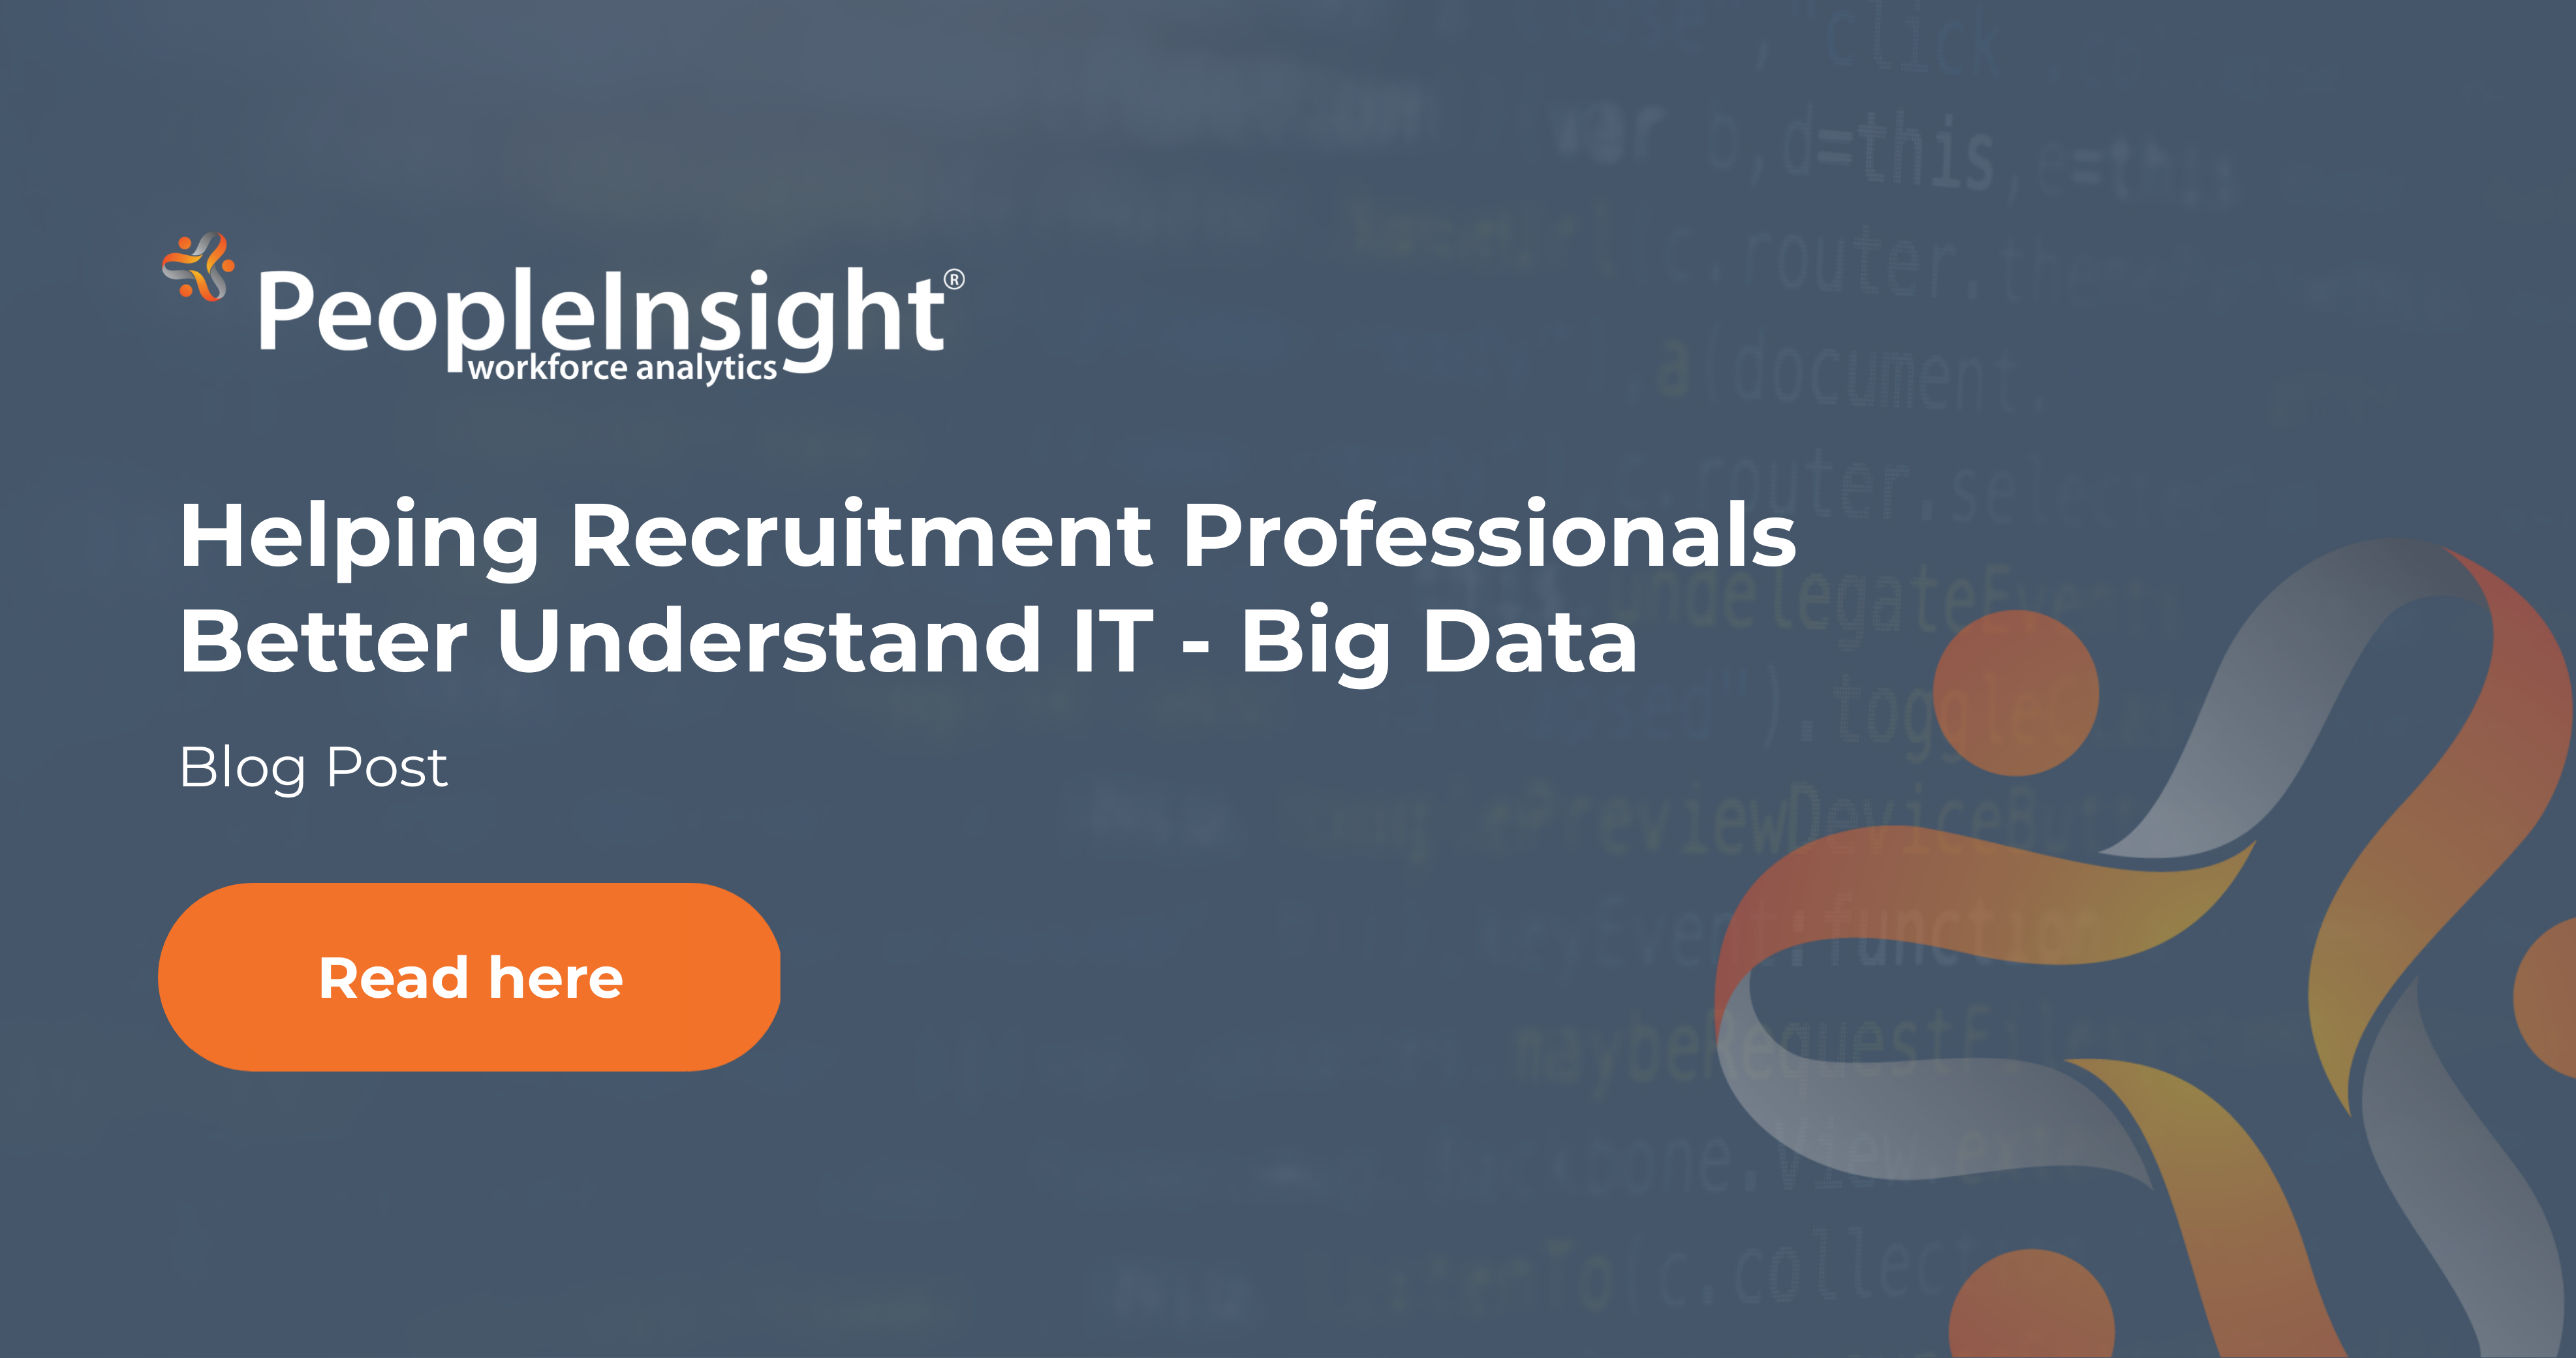 Helping Recruitment Professionals Better Understand IT - Big Data